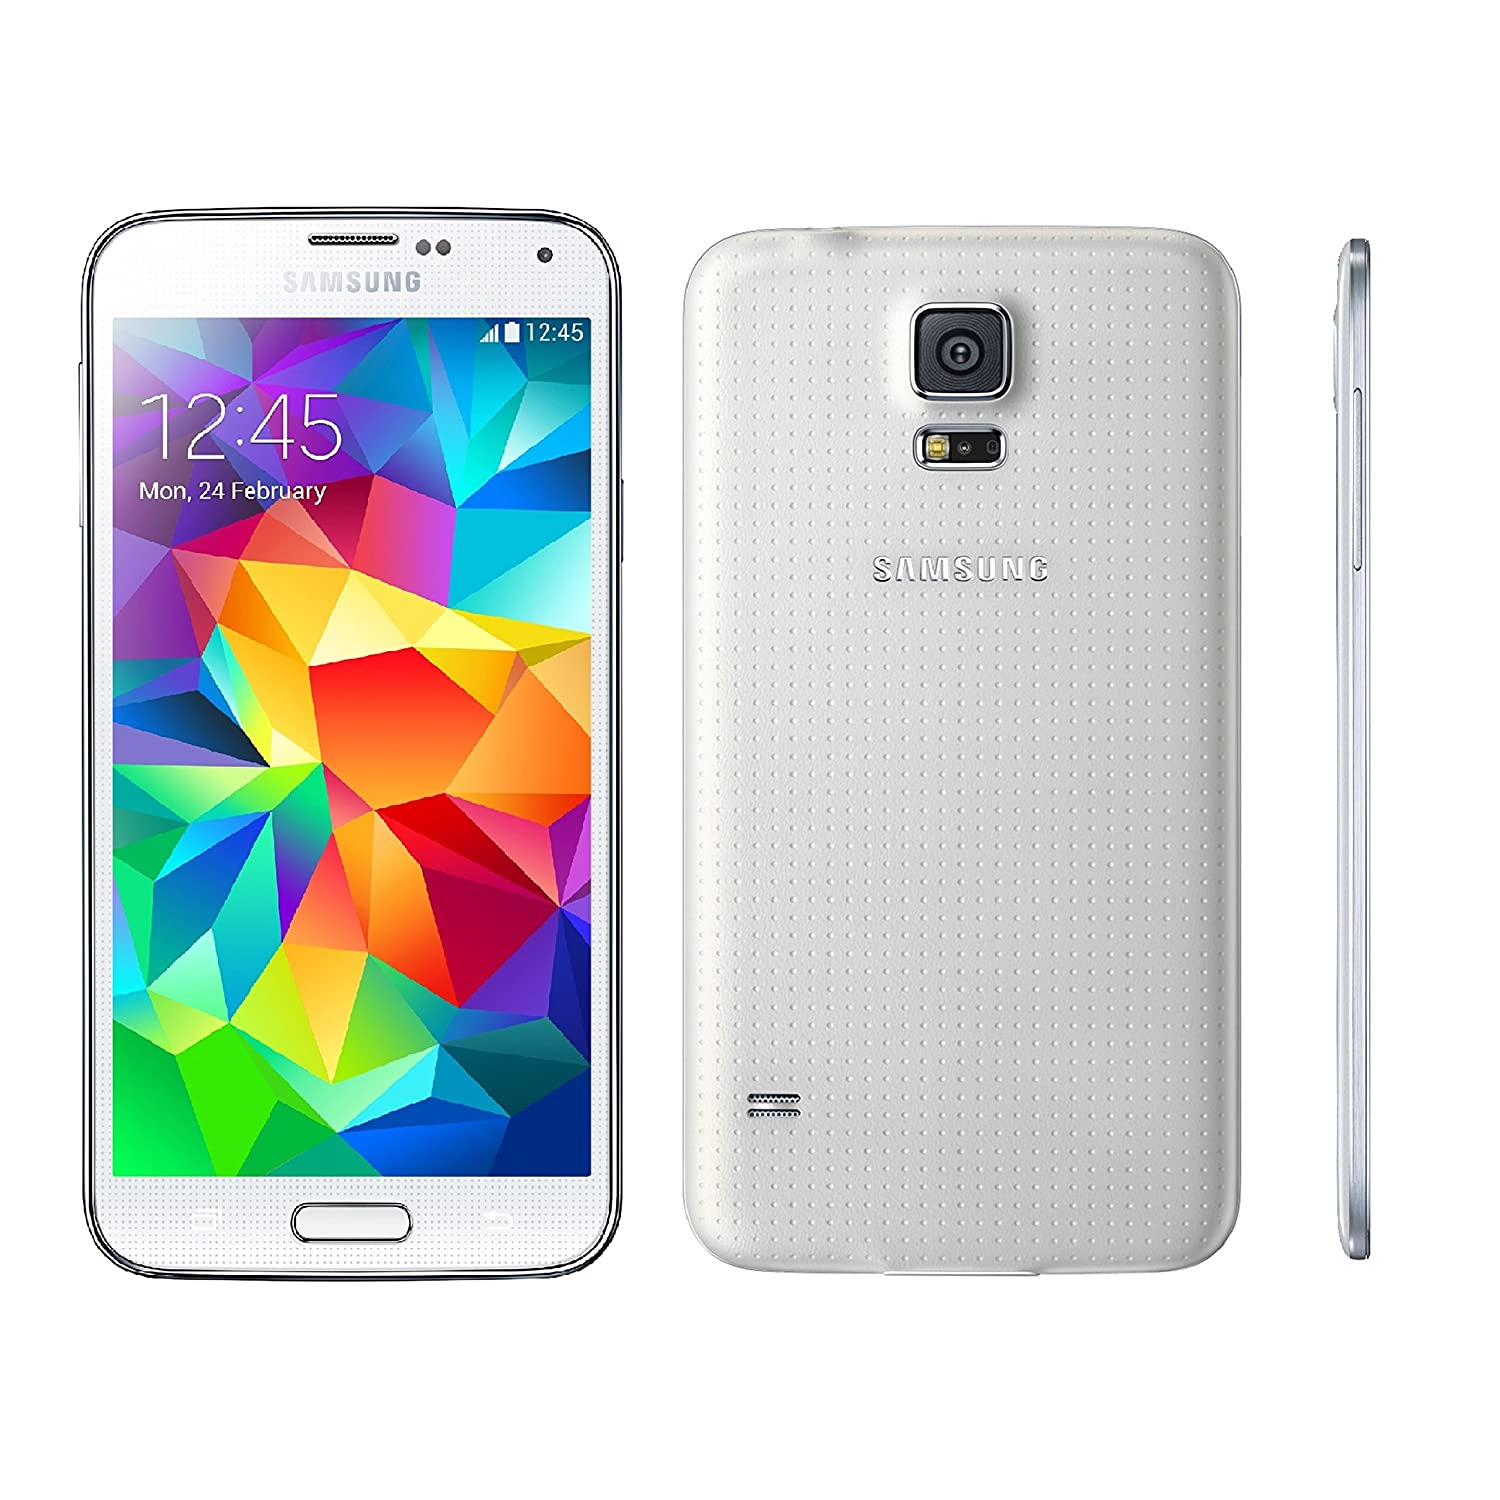 Samsung Galaxy S5 G900H Factory Unlocked Cellphone, Android KitKat 4 4 2  International Version (White)